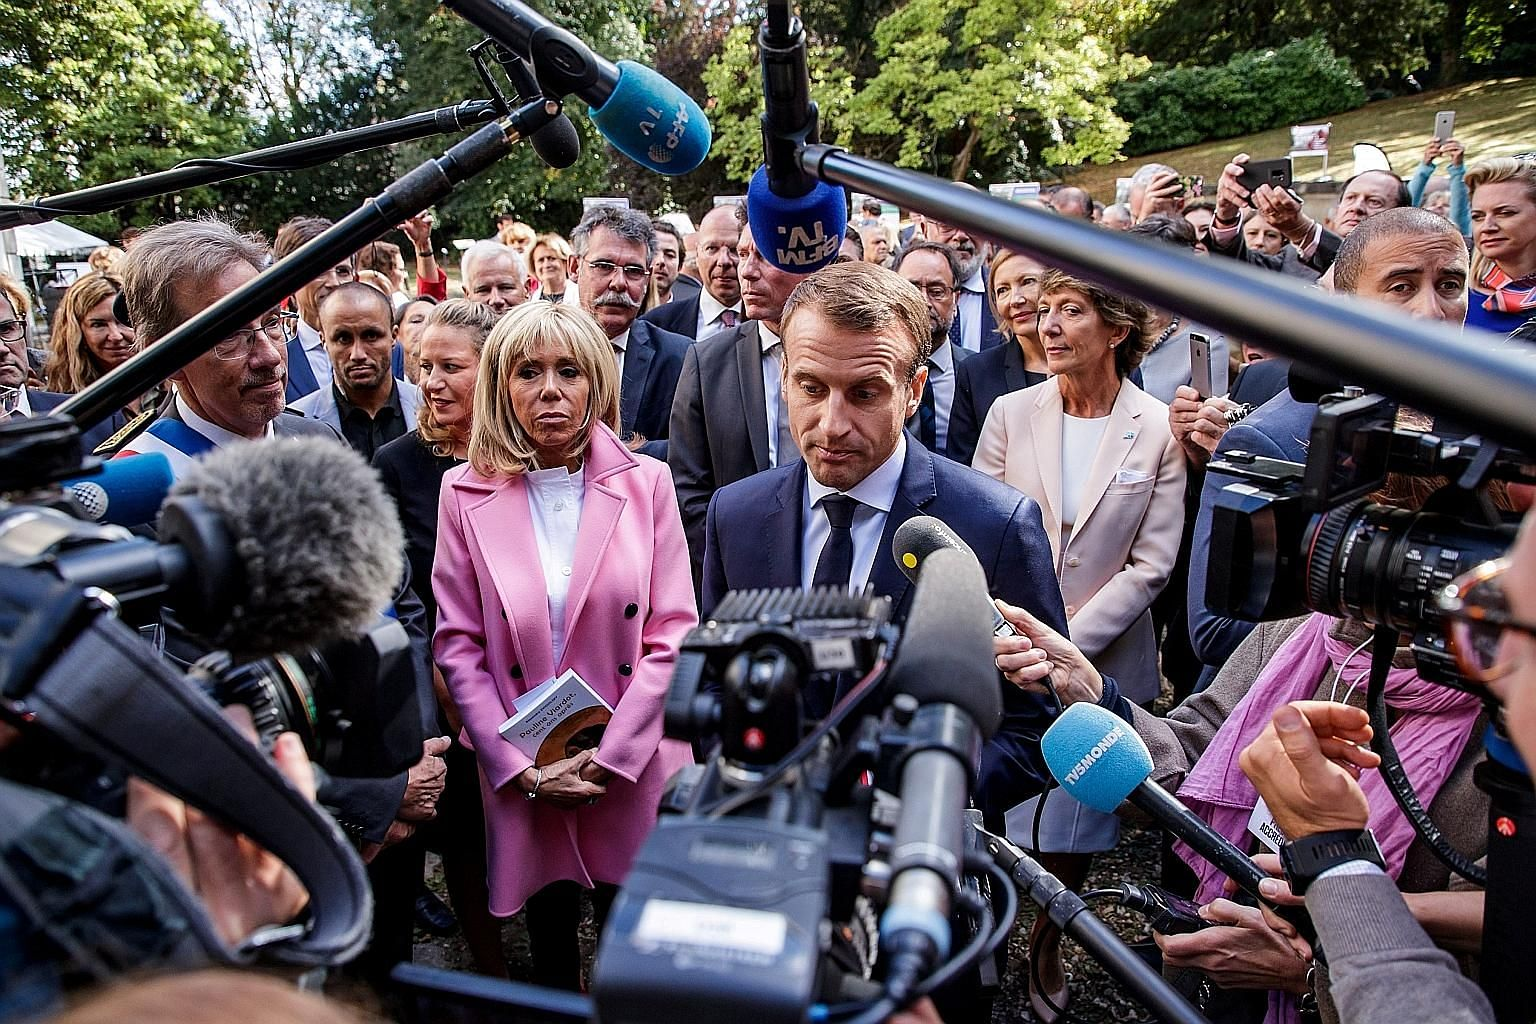 French President Emmanuel Macron speaking to the press as his wife, Brigitte, looks on during a visit to Bougival, near Paris, earlier this month. Mr Macron's approval rating has plunged to only 19 per cent, with 60 per cent finding his achievements